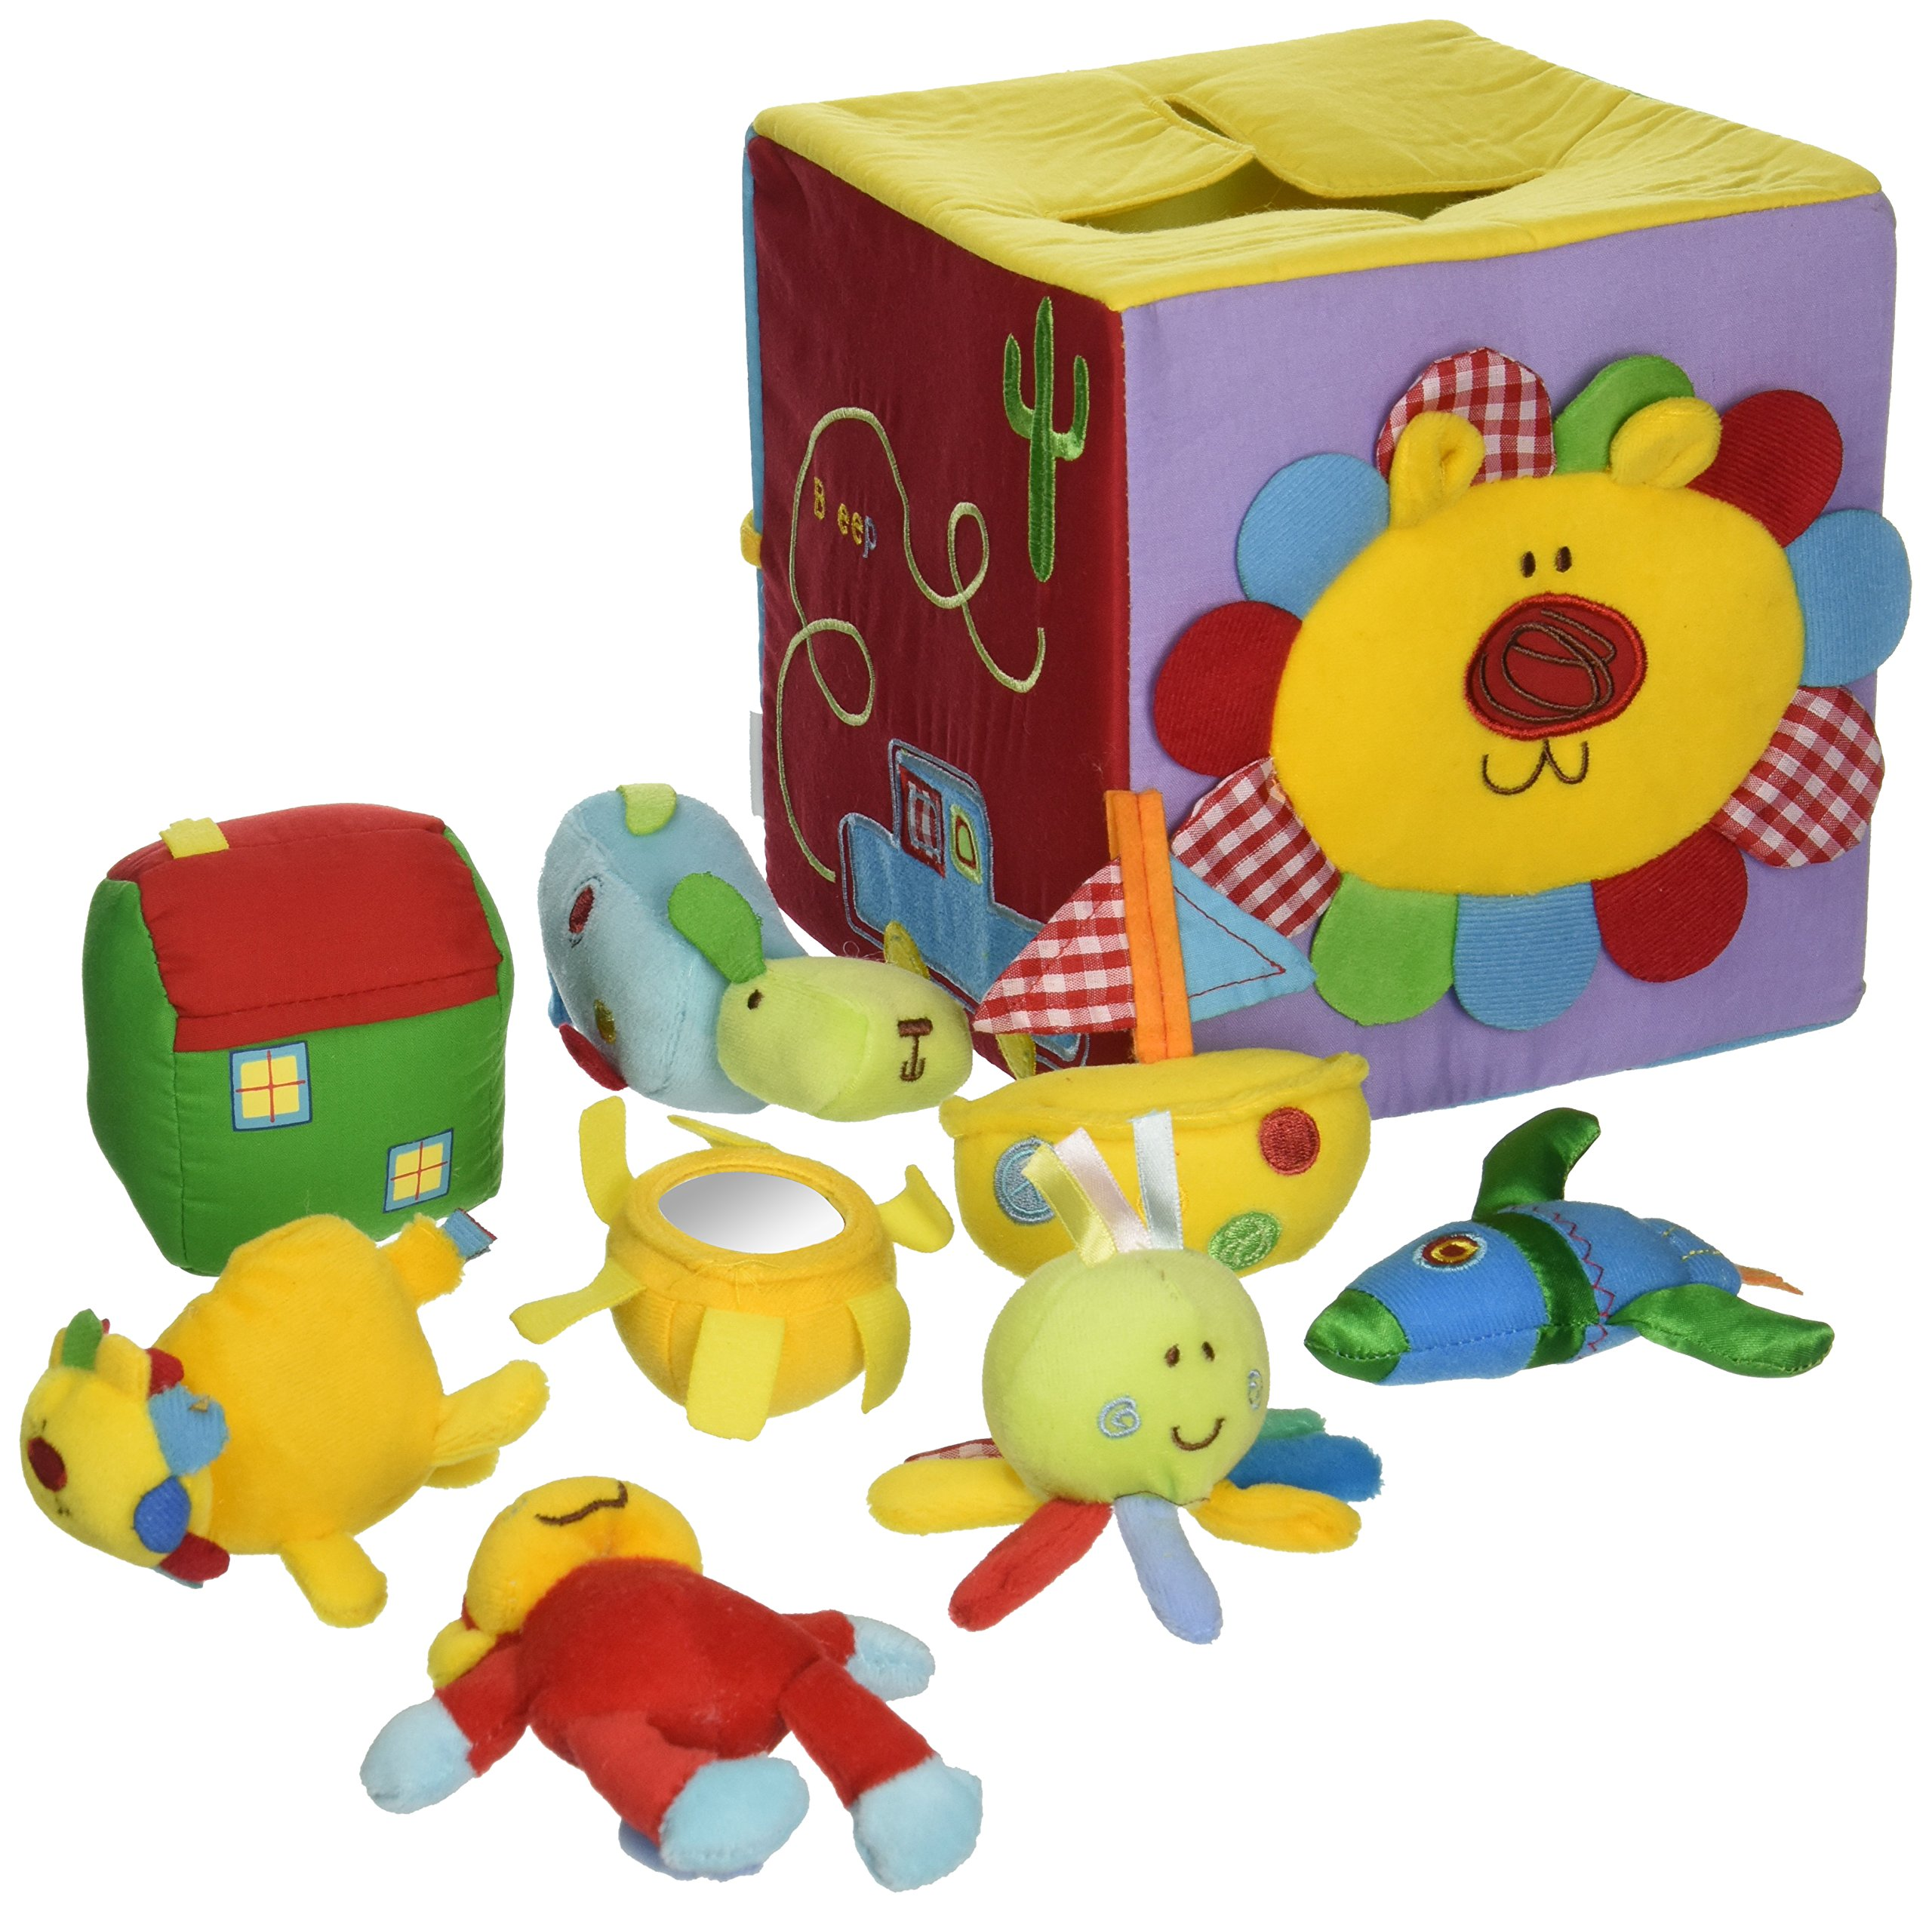 Surprise What's Inside Toy Box